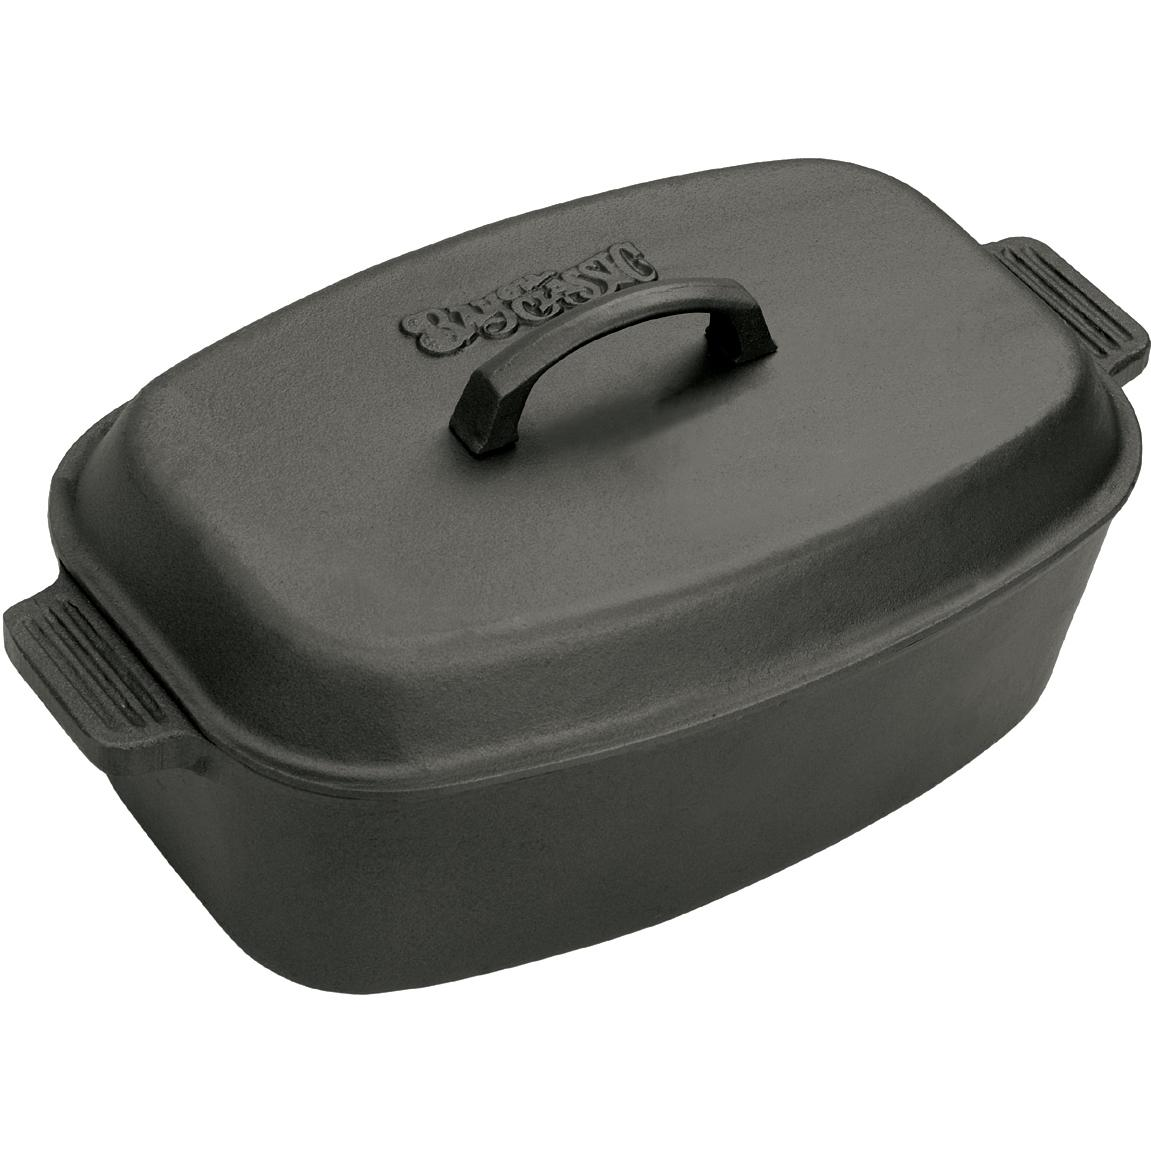 Bayou Classic Roasters 12 Quart Cast Iron Oval Roaster